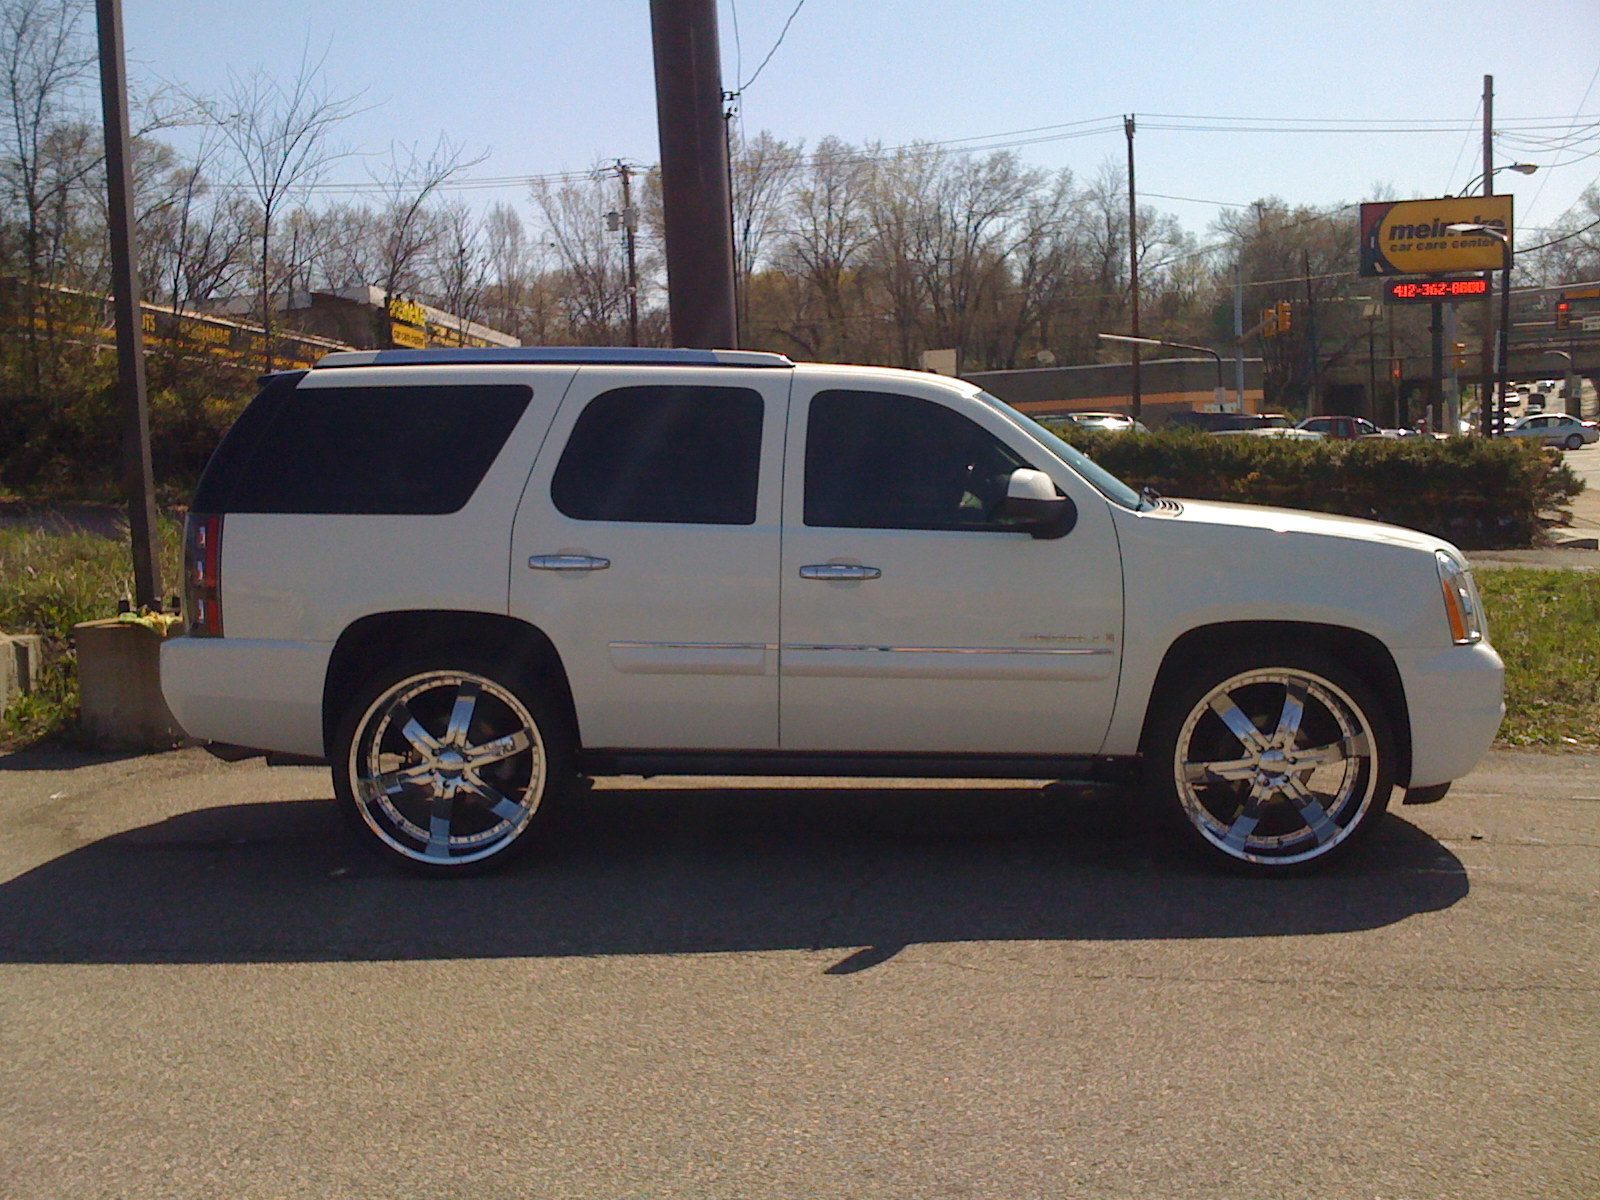 2008 Gmc Yukon Information And Photos Zombiedrive